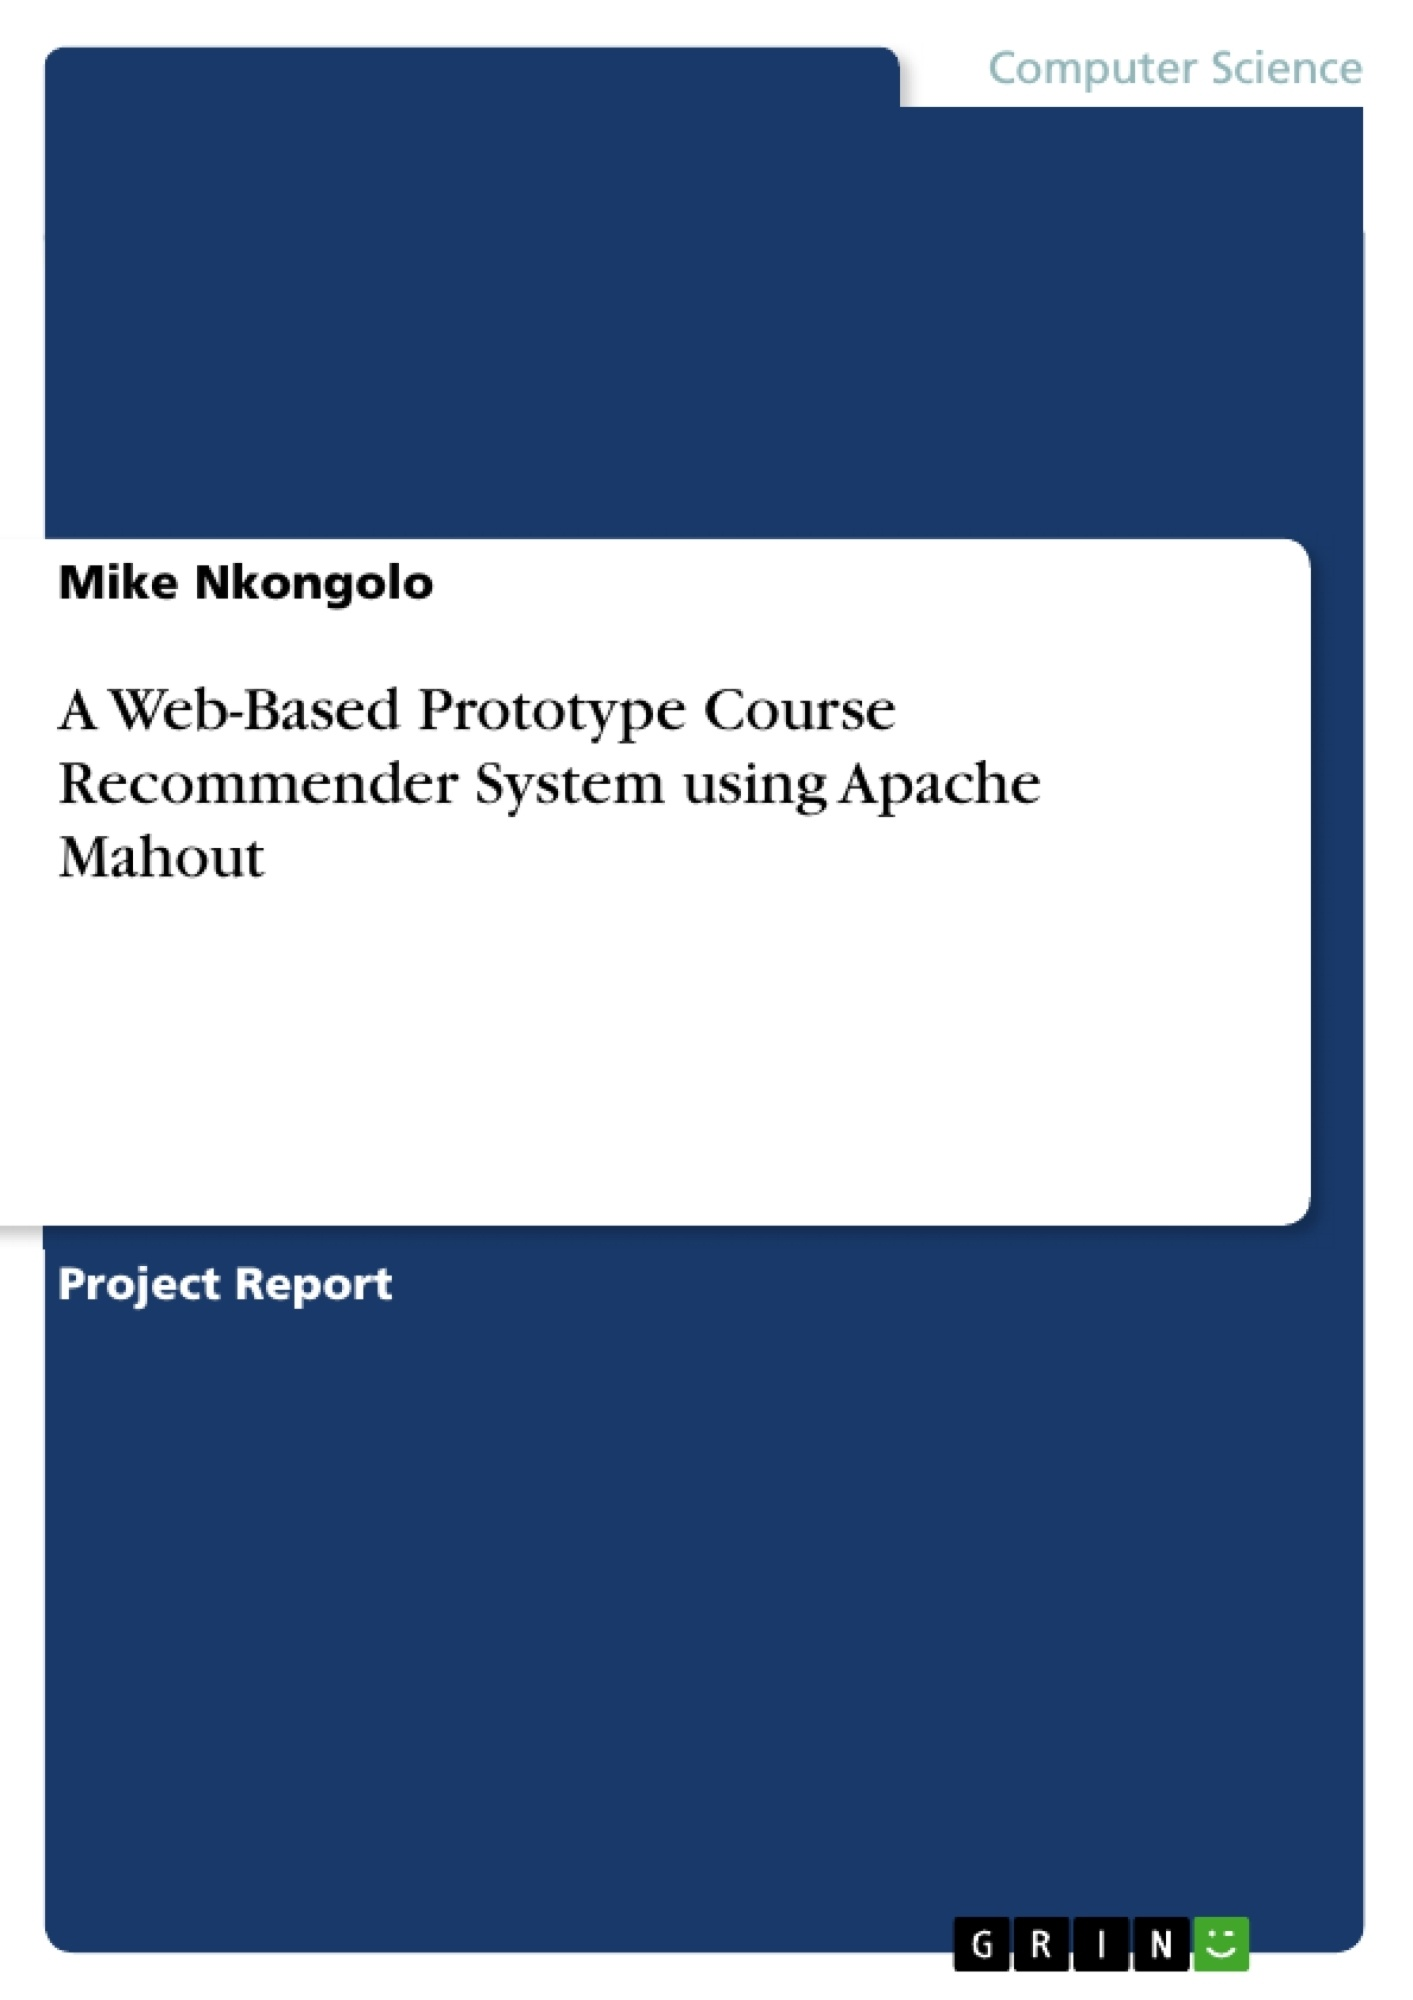 GRIN - A Web-Based Prototype Course Recommender System using Apache Mahout